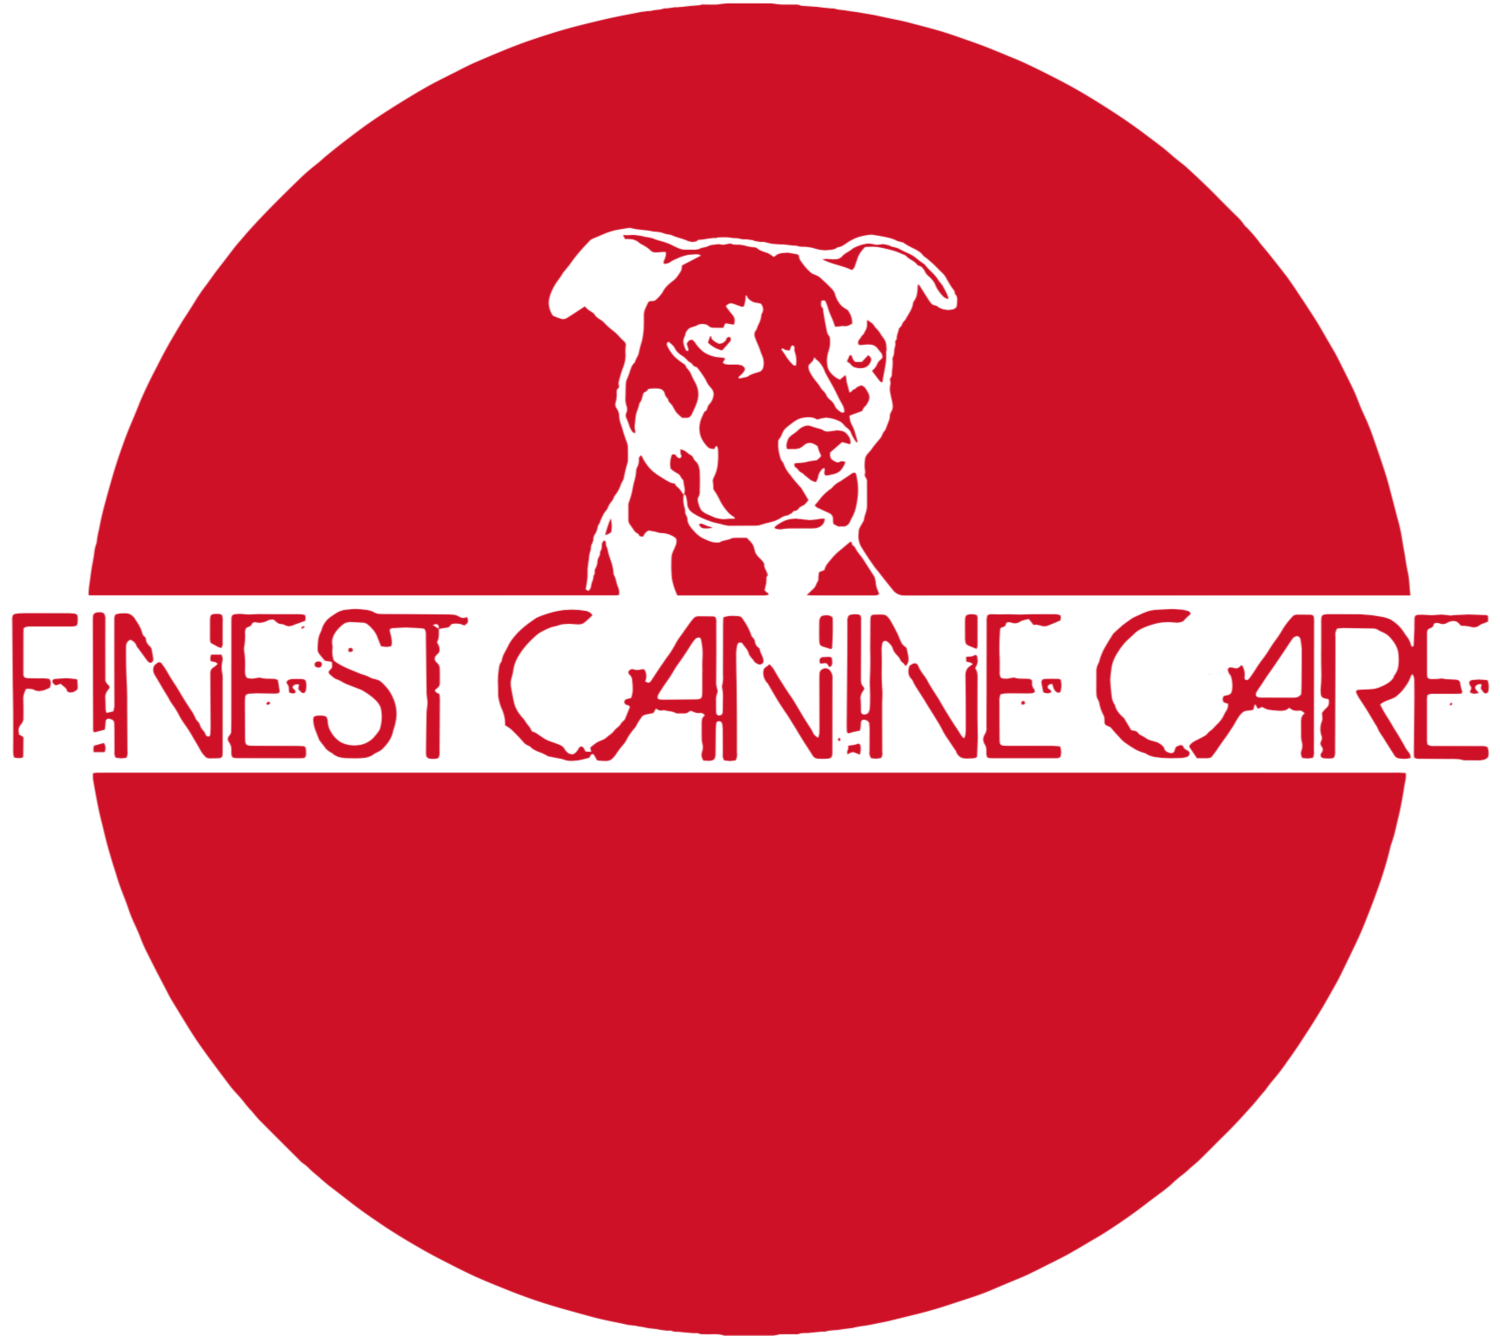 Finest Canine Care